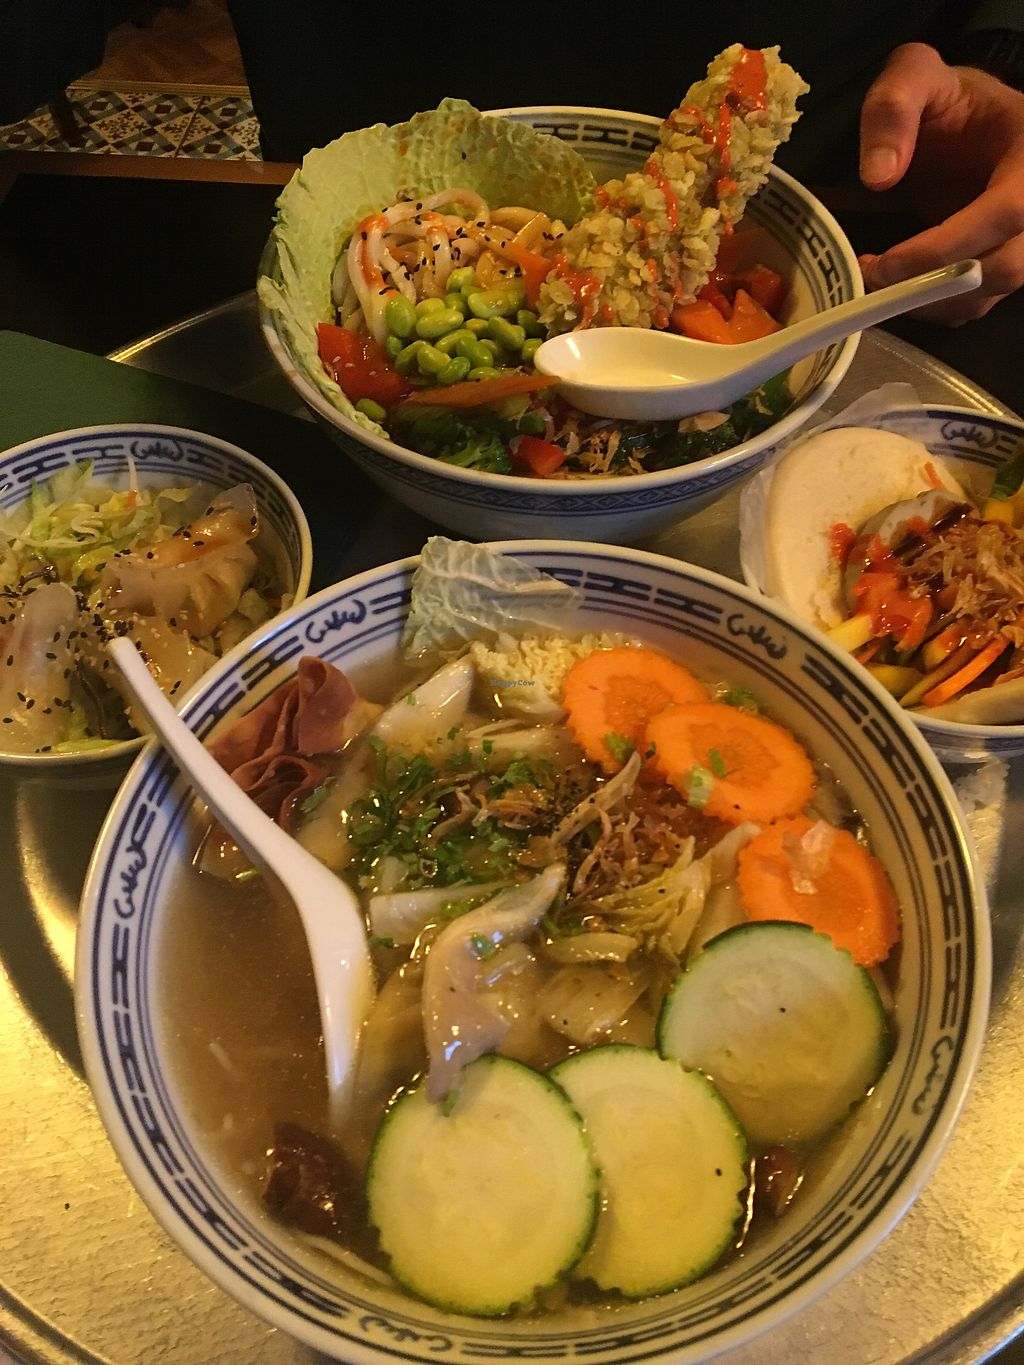 """Photo of 1990 Vegan Living  by <a href=""""/members/profile/SuzanneHarlaar"""">SuzanneHarlaar</a> <br/>Won ton soup and the yin yang bowl :)  <br/> April 4, 2018  - <a href='/contact/abuse/image/84955/380668'>Report</a>"""